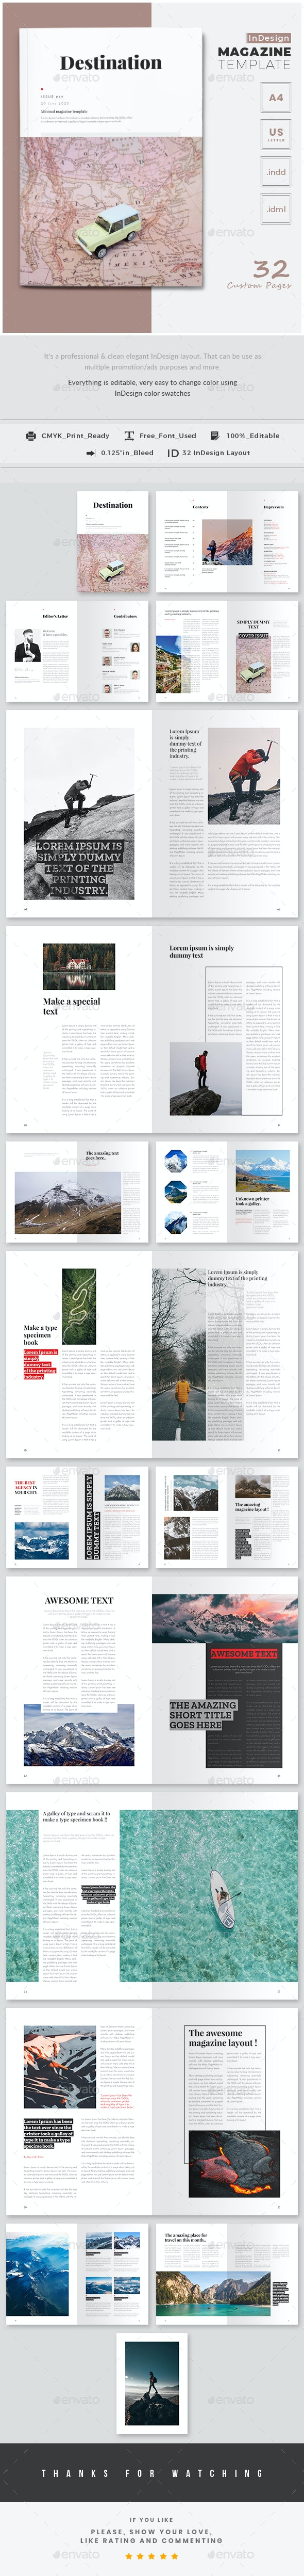 Destination Magazine Template - Magazines Print Templates